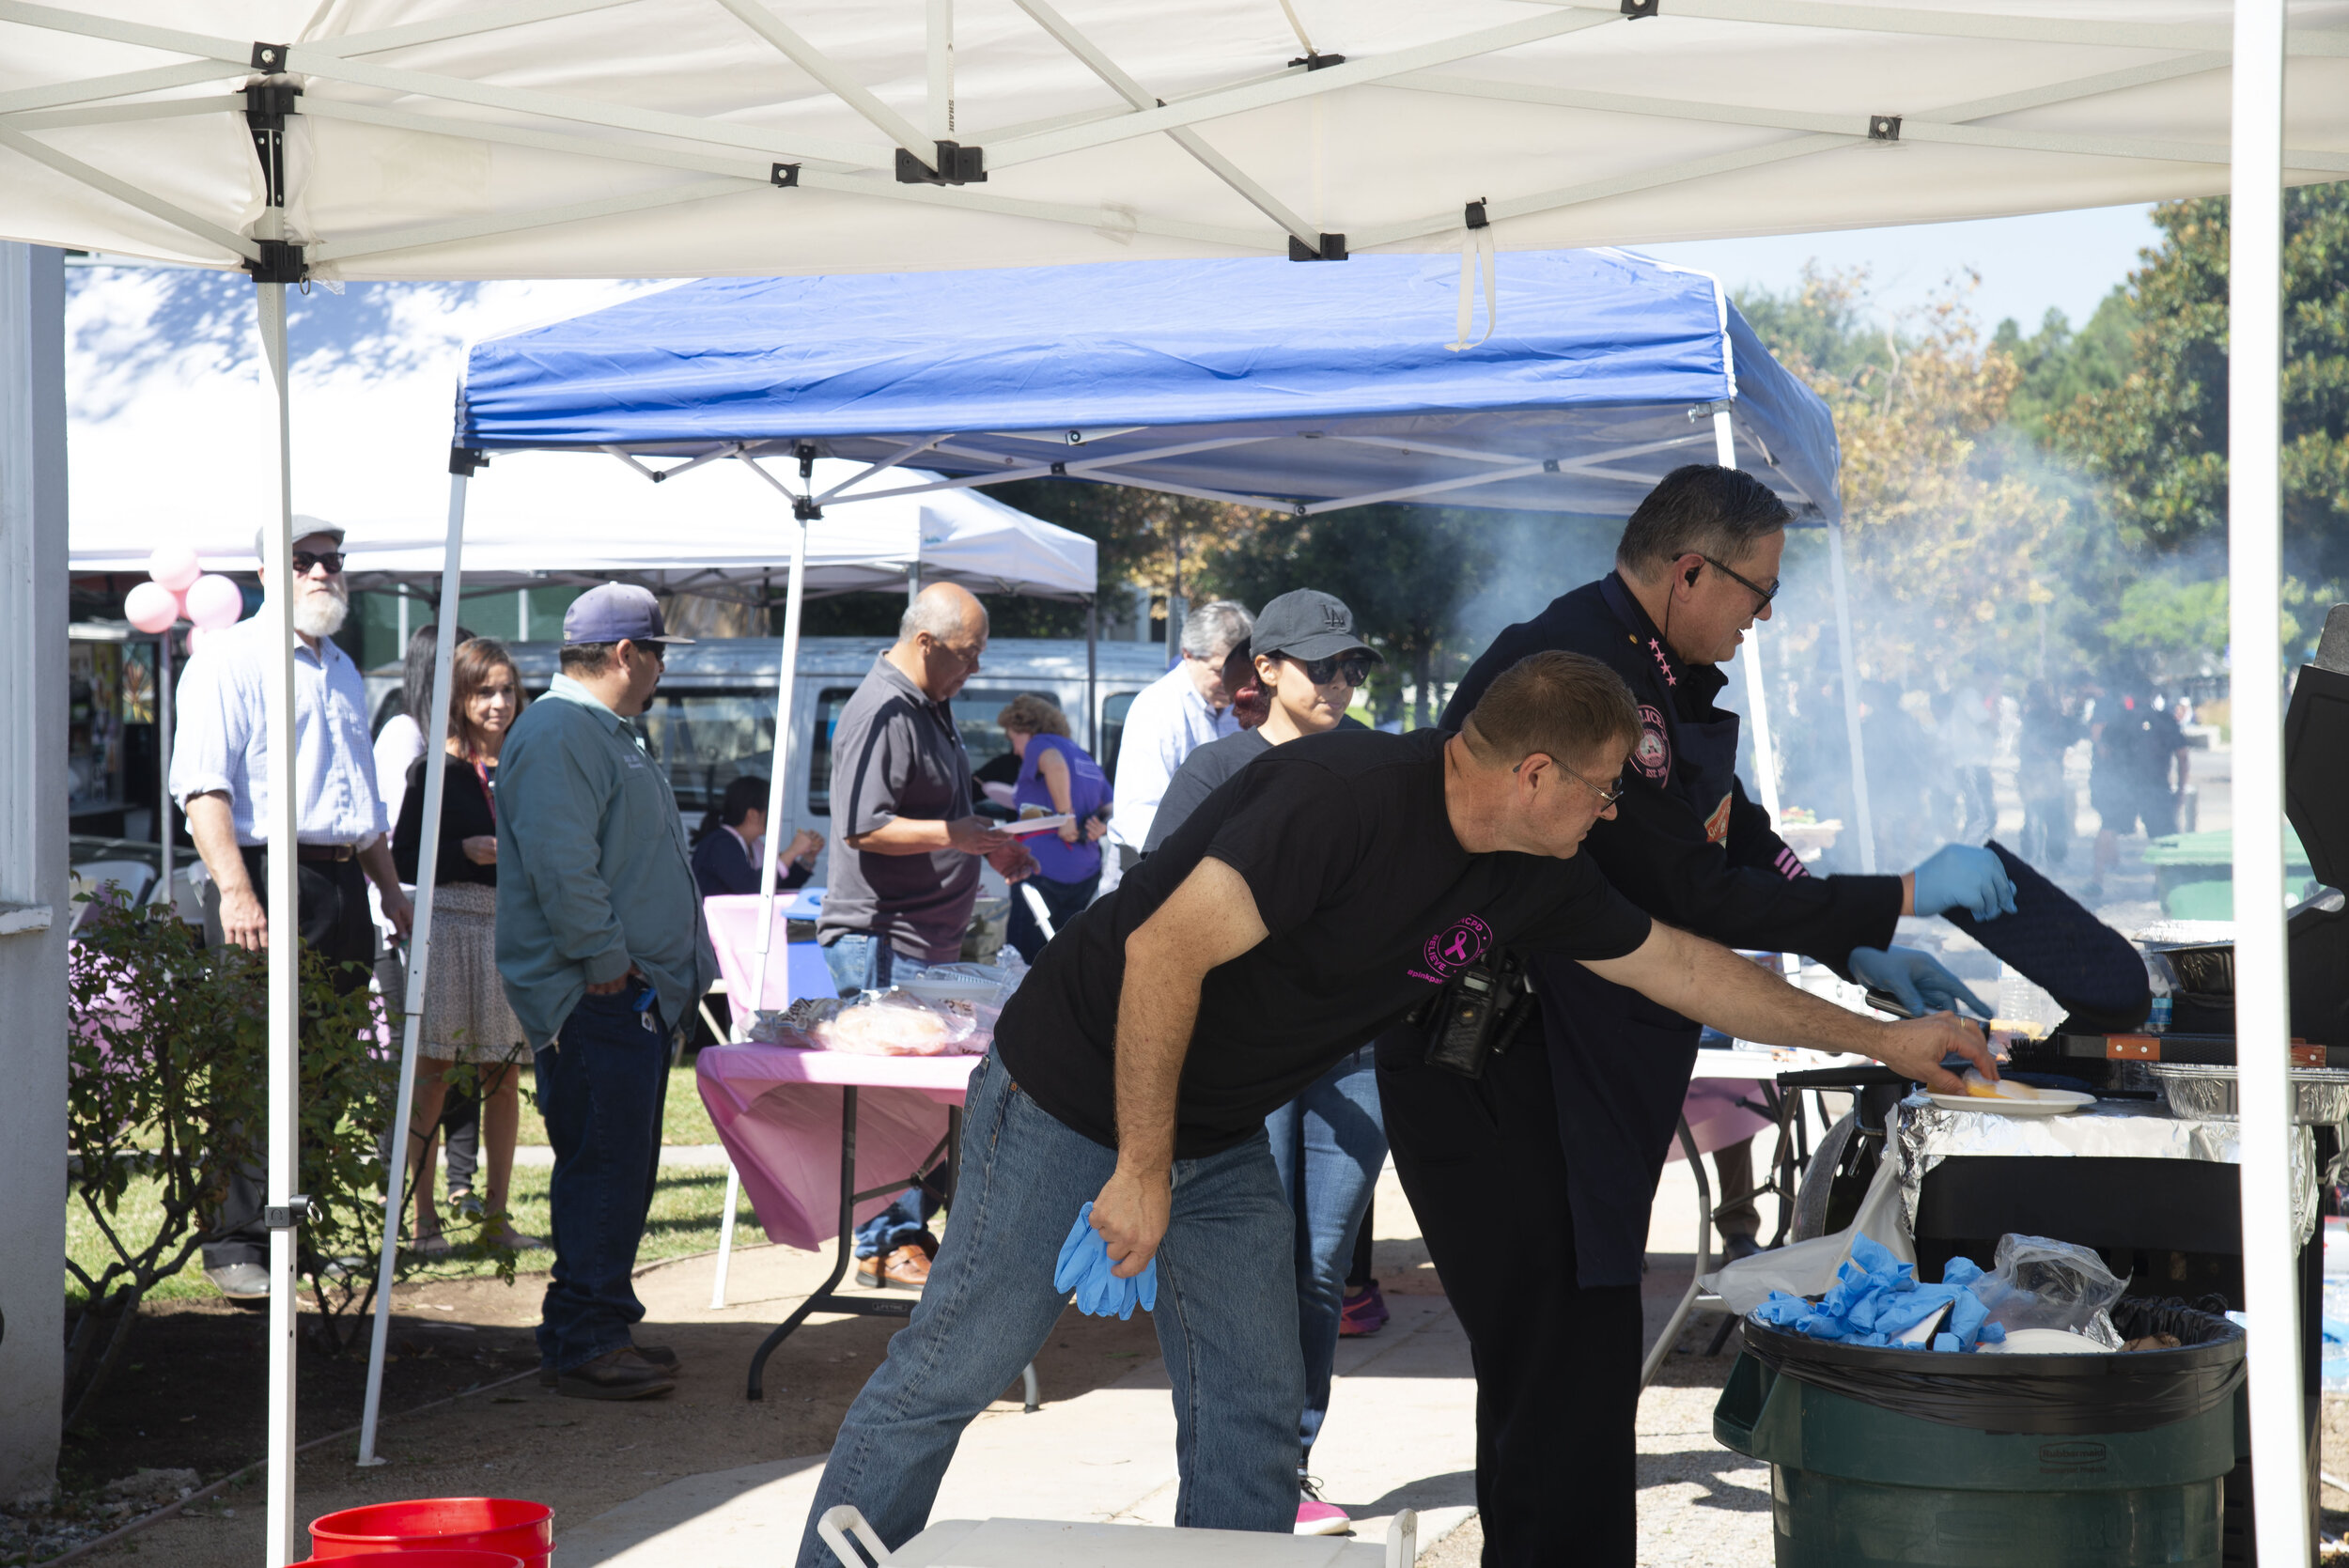 SMC Chief of Police, Johnnie Adams (R), and Captain Vince Carter (L), prepare burgers and hot dogs at the SMC Police Department barbecue and fundraiser.  (Rachel O'Brien/The Corsair)